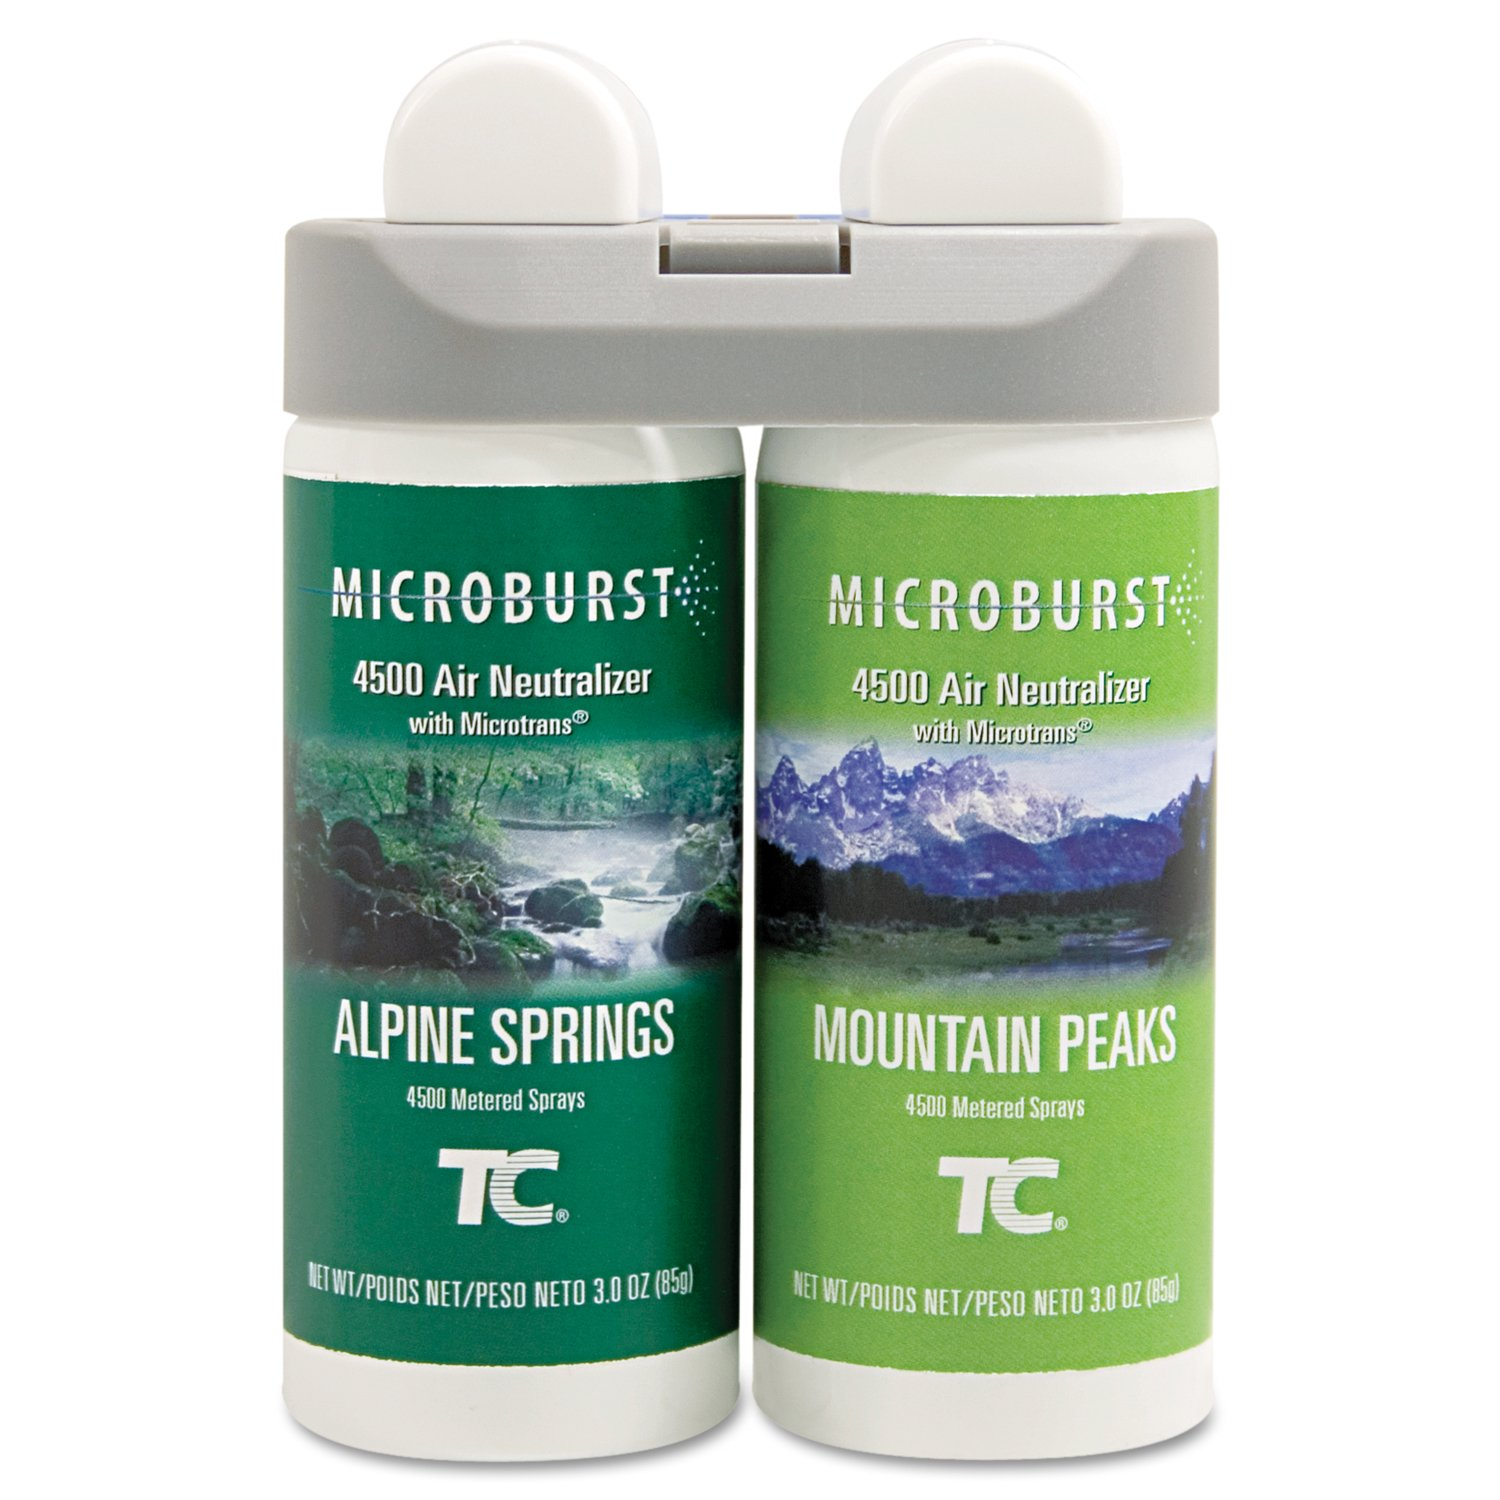 86357bfbd826 Rubbermaid Commercial 3485950 Microburst Duet 2-Fragrance Aerosol Odor  Control Air Care System, Fragrance Refill, Alpine Spring/ Mountain Peaks